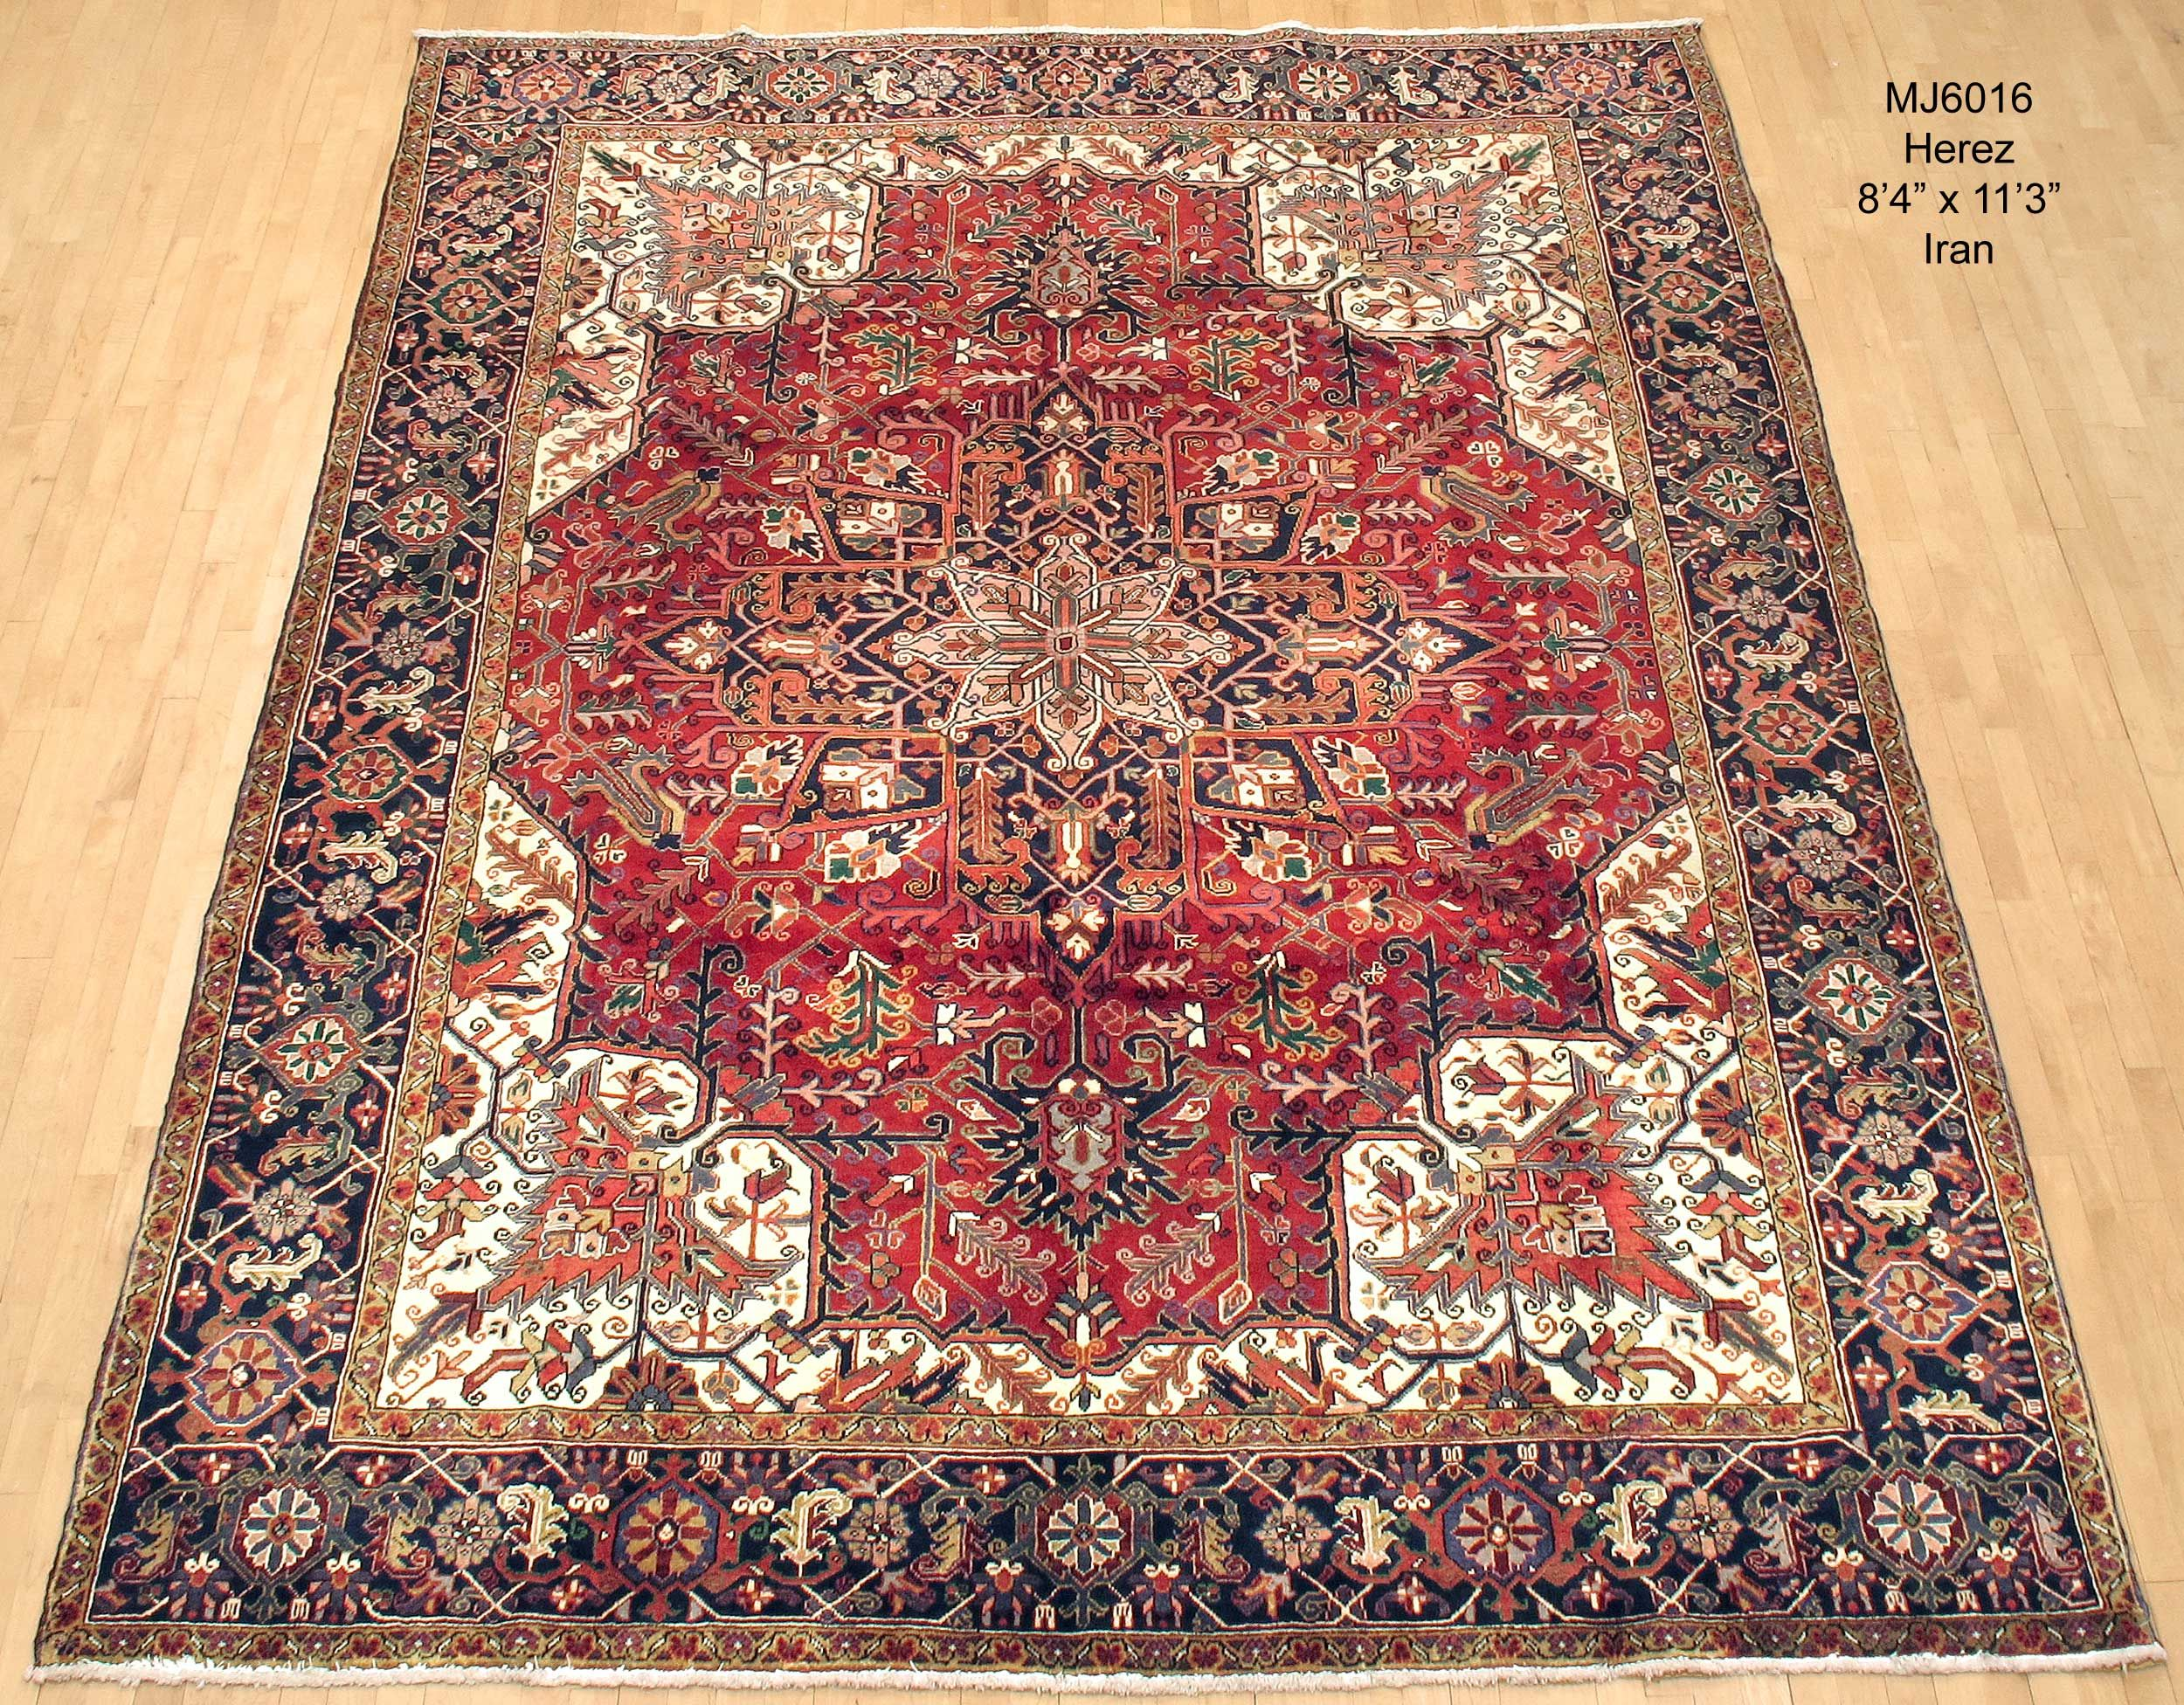 Mj6016 Herez From Iran 8 4 X 11 3 Persian Carpet Bohemian Rug Carpet